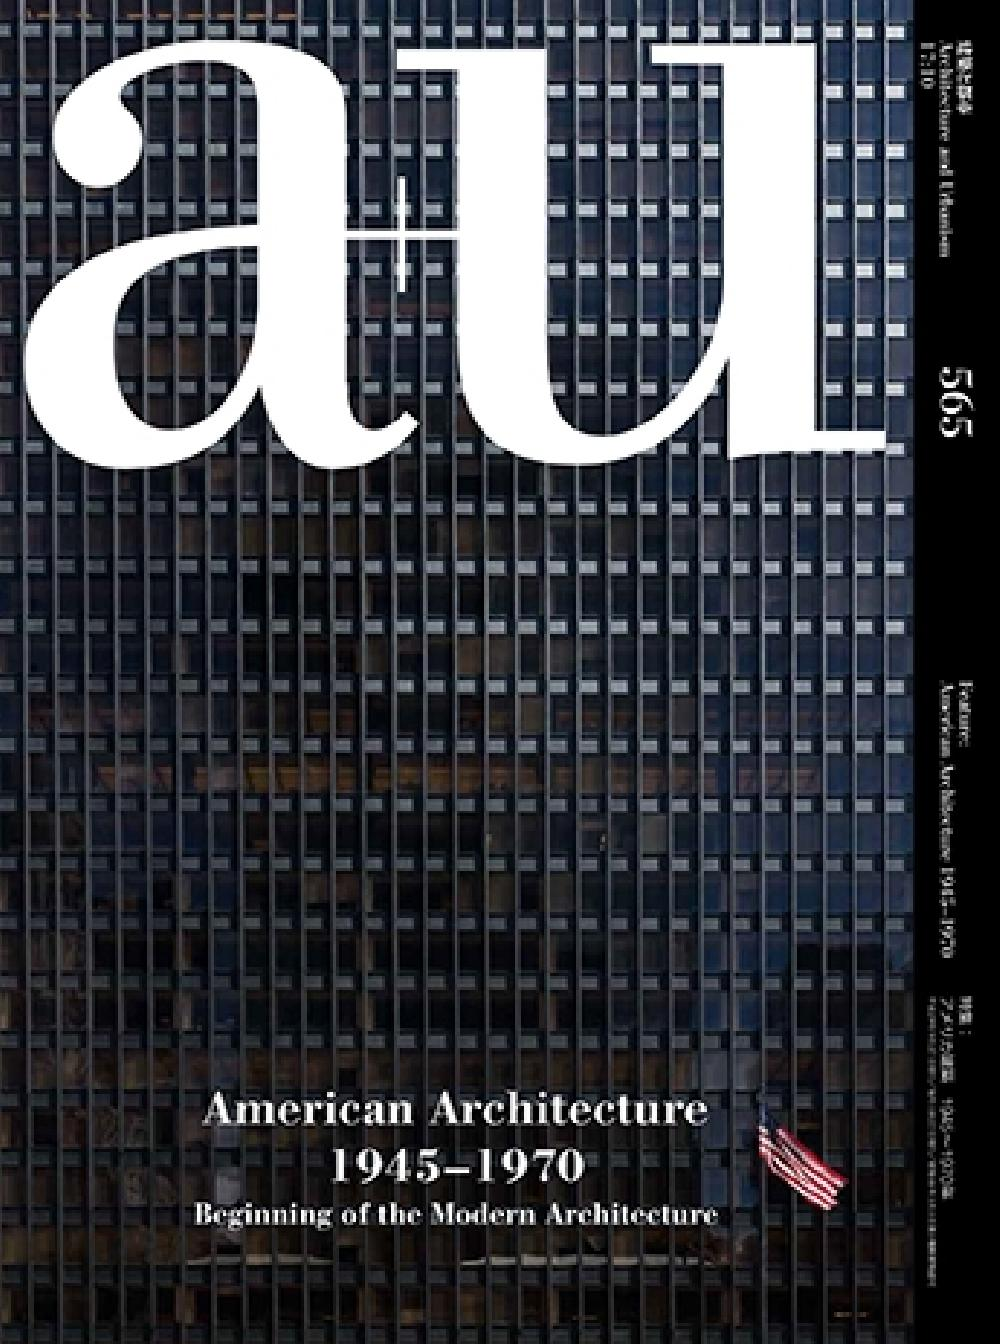 A+U 565 17:10 American Architecture 1945-1970 - Beginning Of The Modern Architecture